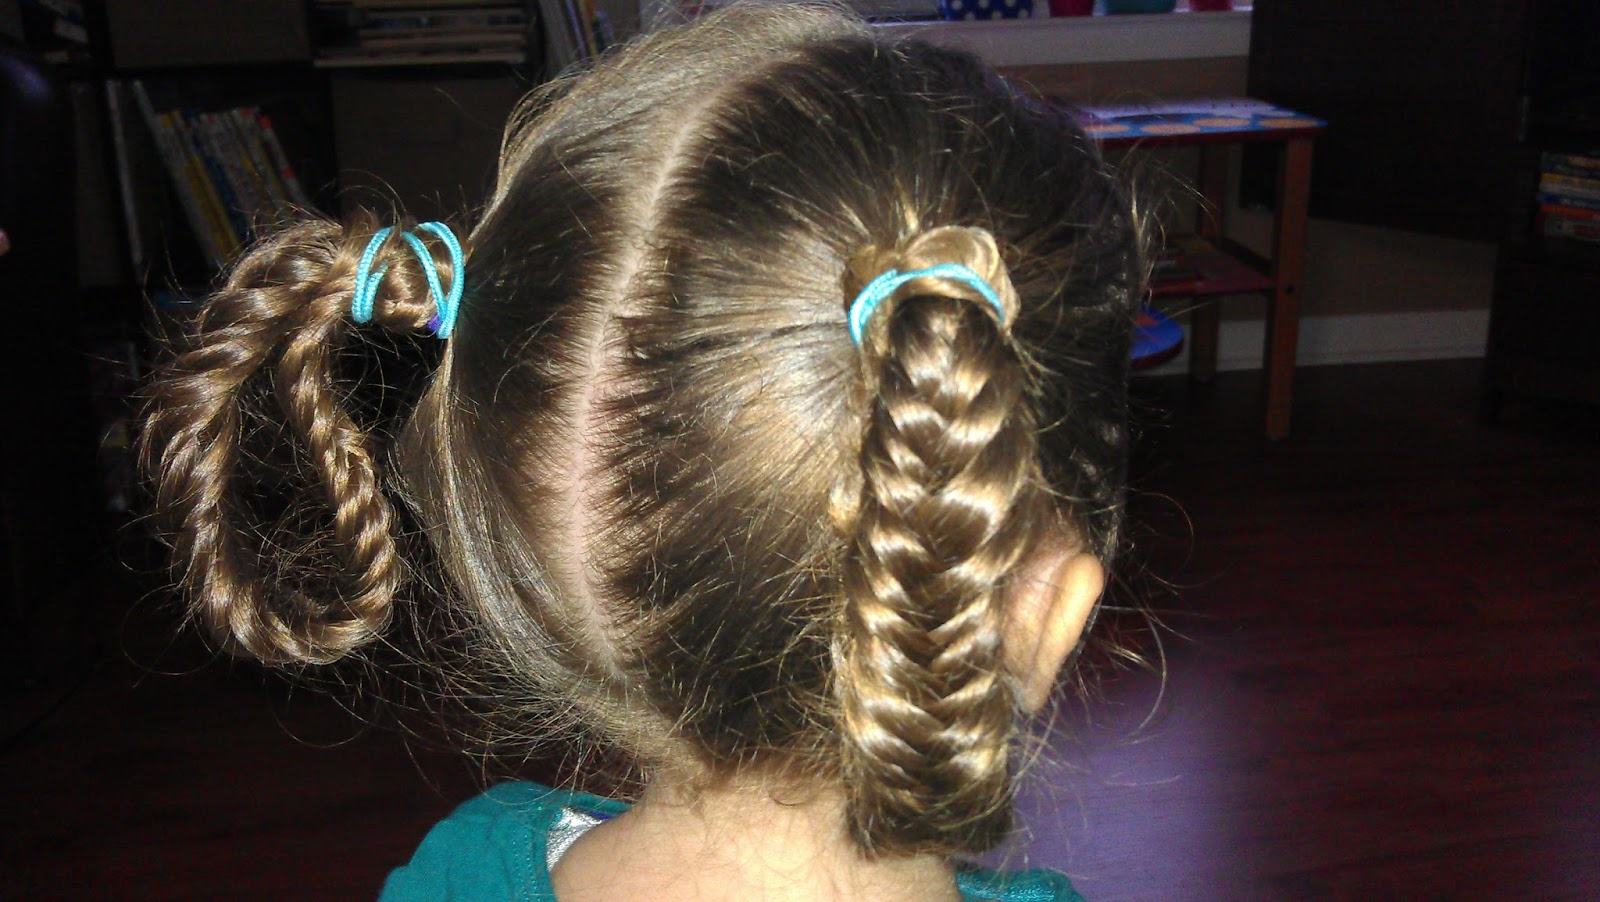 4xfaithful: Braids, Buns, & Bows - Oh My! (Part TWO)